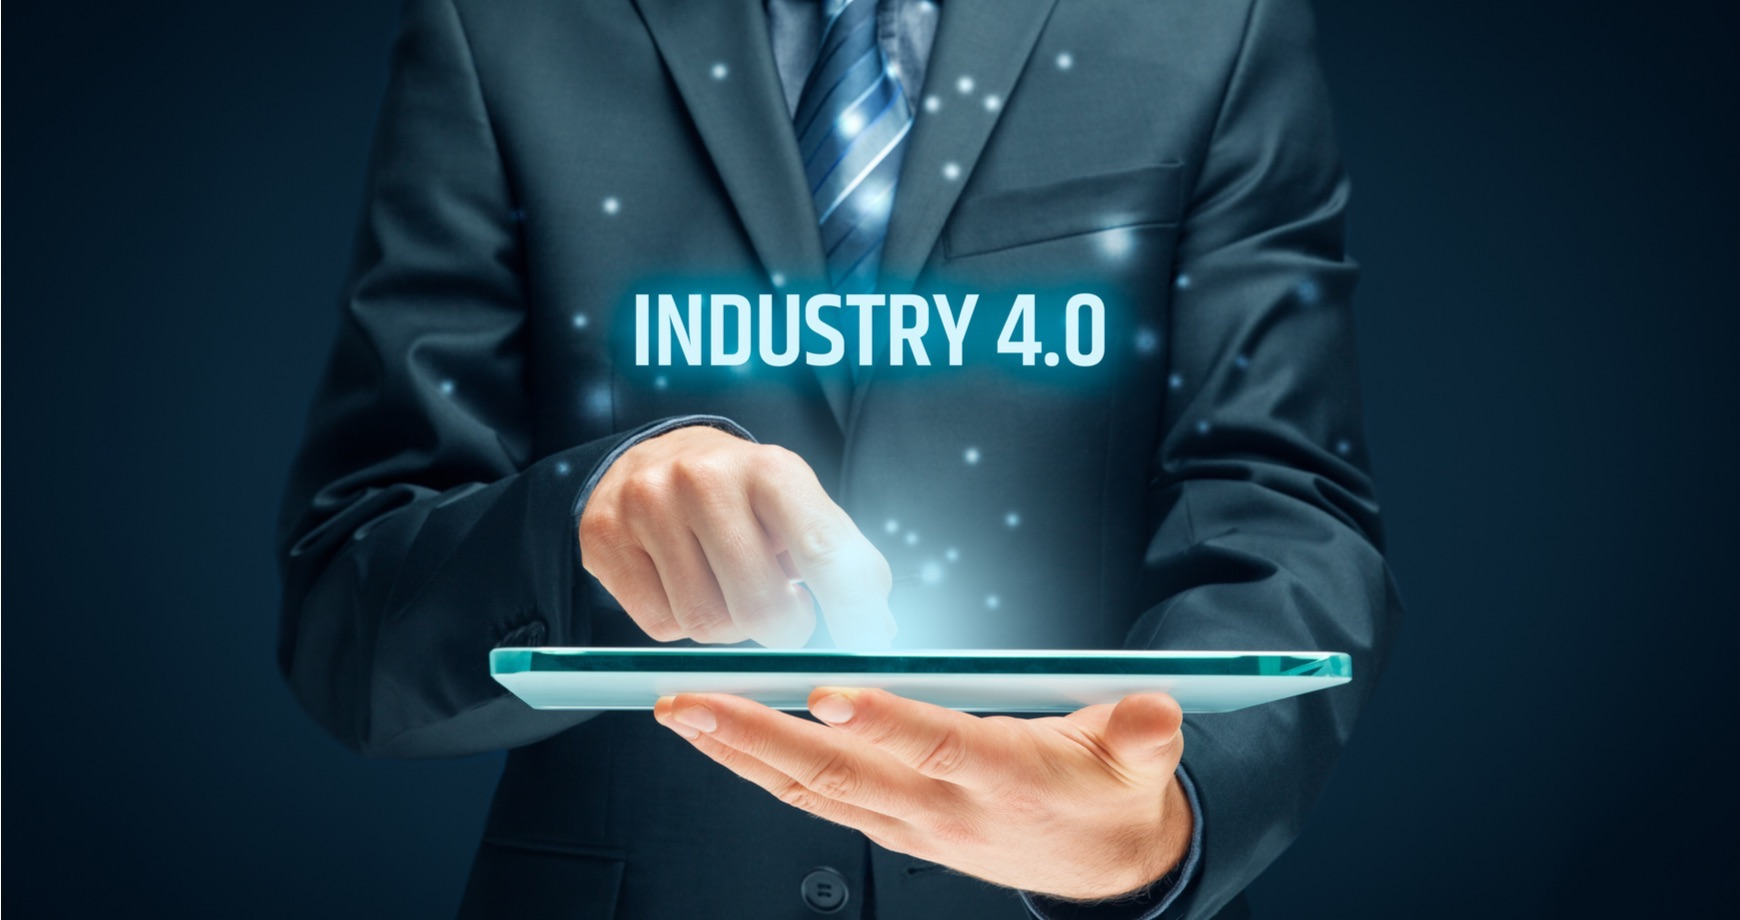 Man looking at ipad with Industry 4.0 above as text